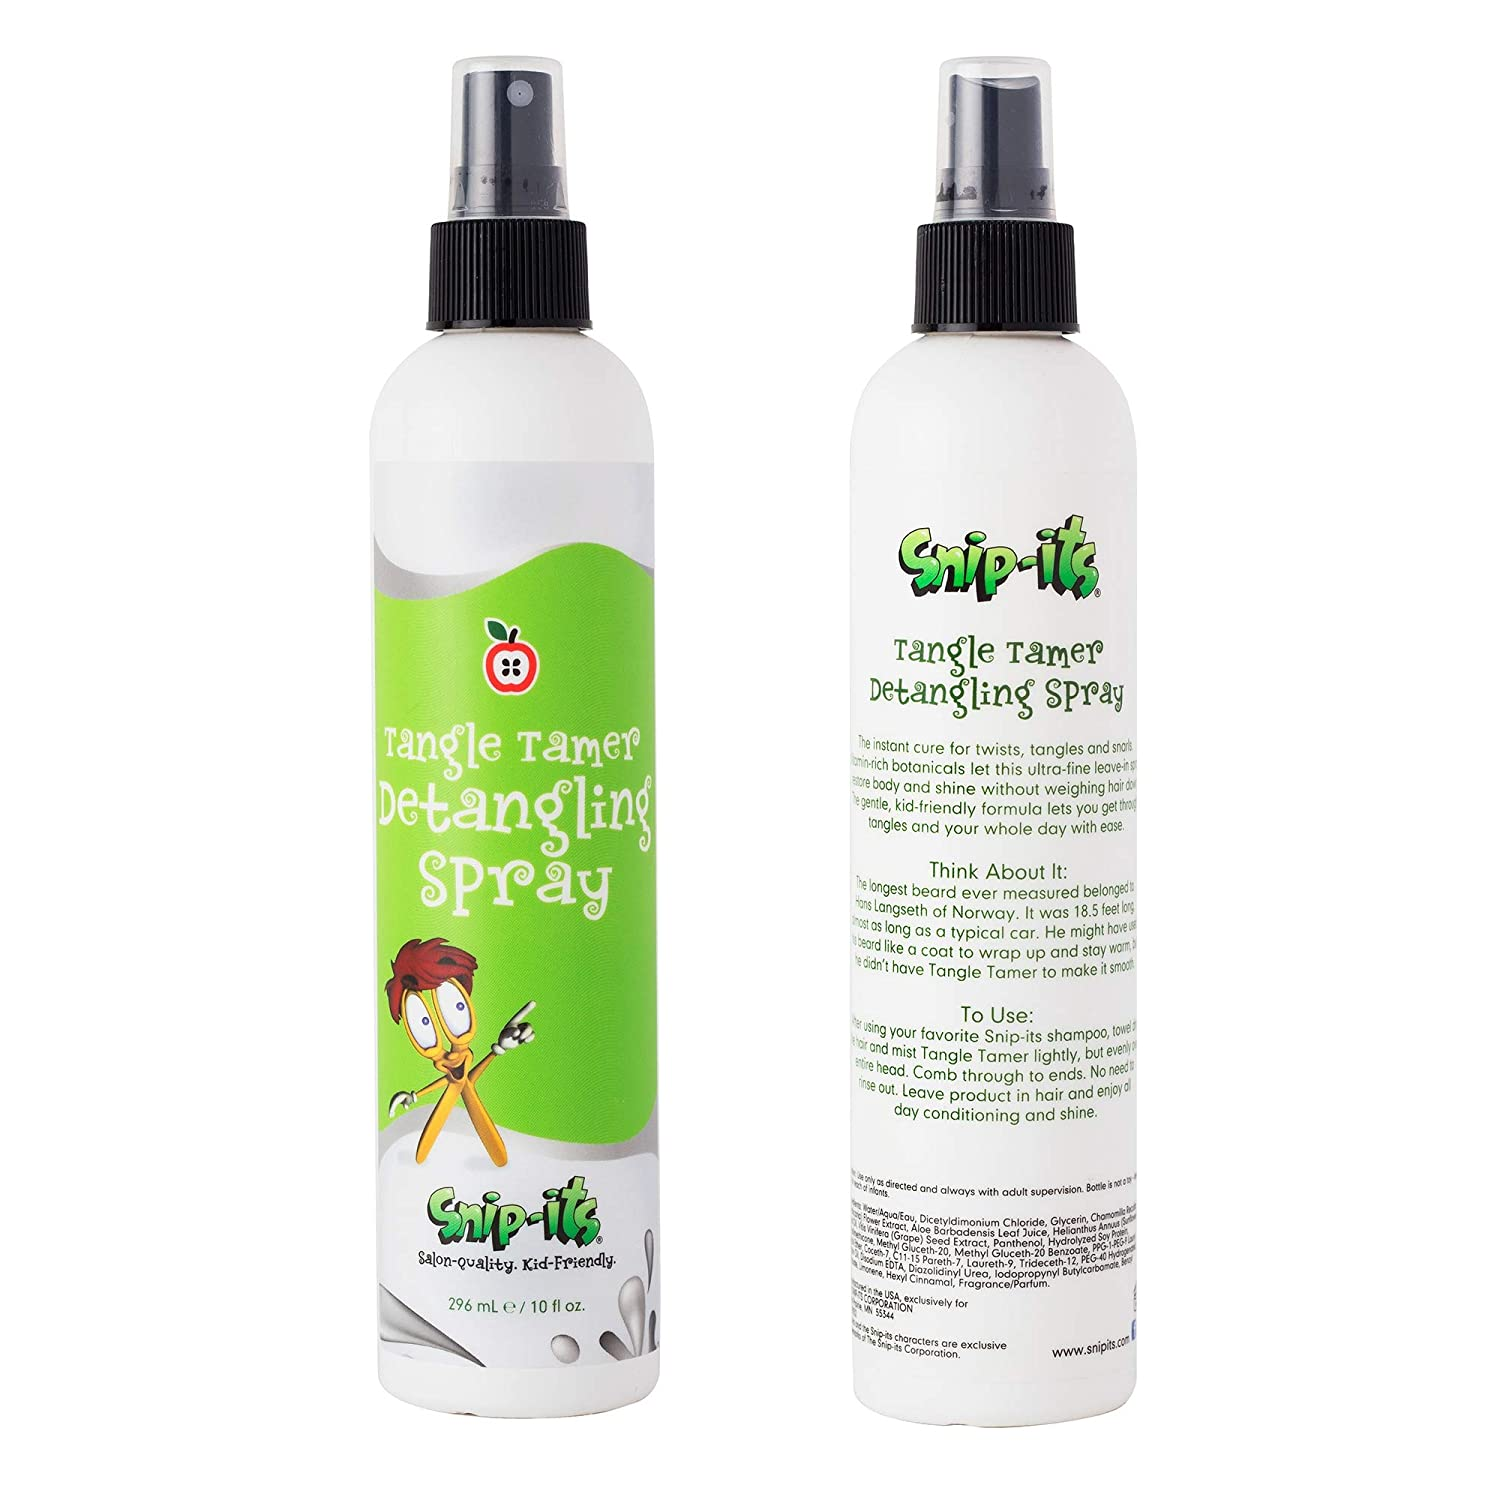 Snip-its Tangle Tamer Detangling Spray 10oz, Gentle Kid Friendly Formula, Vitamin Rich, Made in the USA